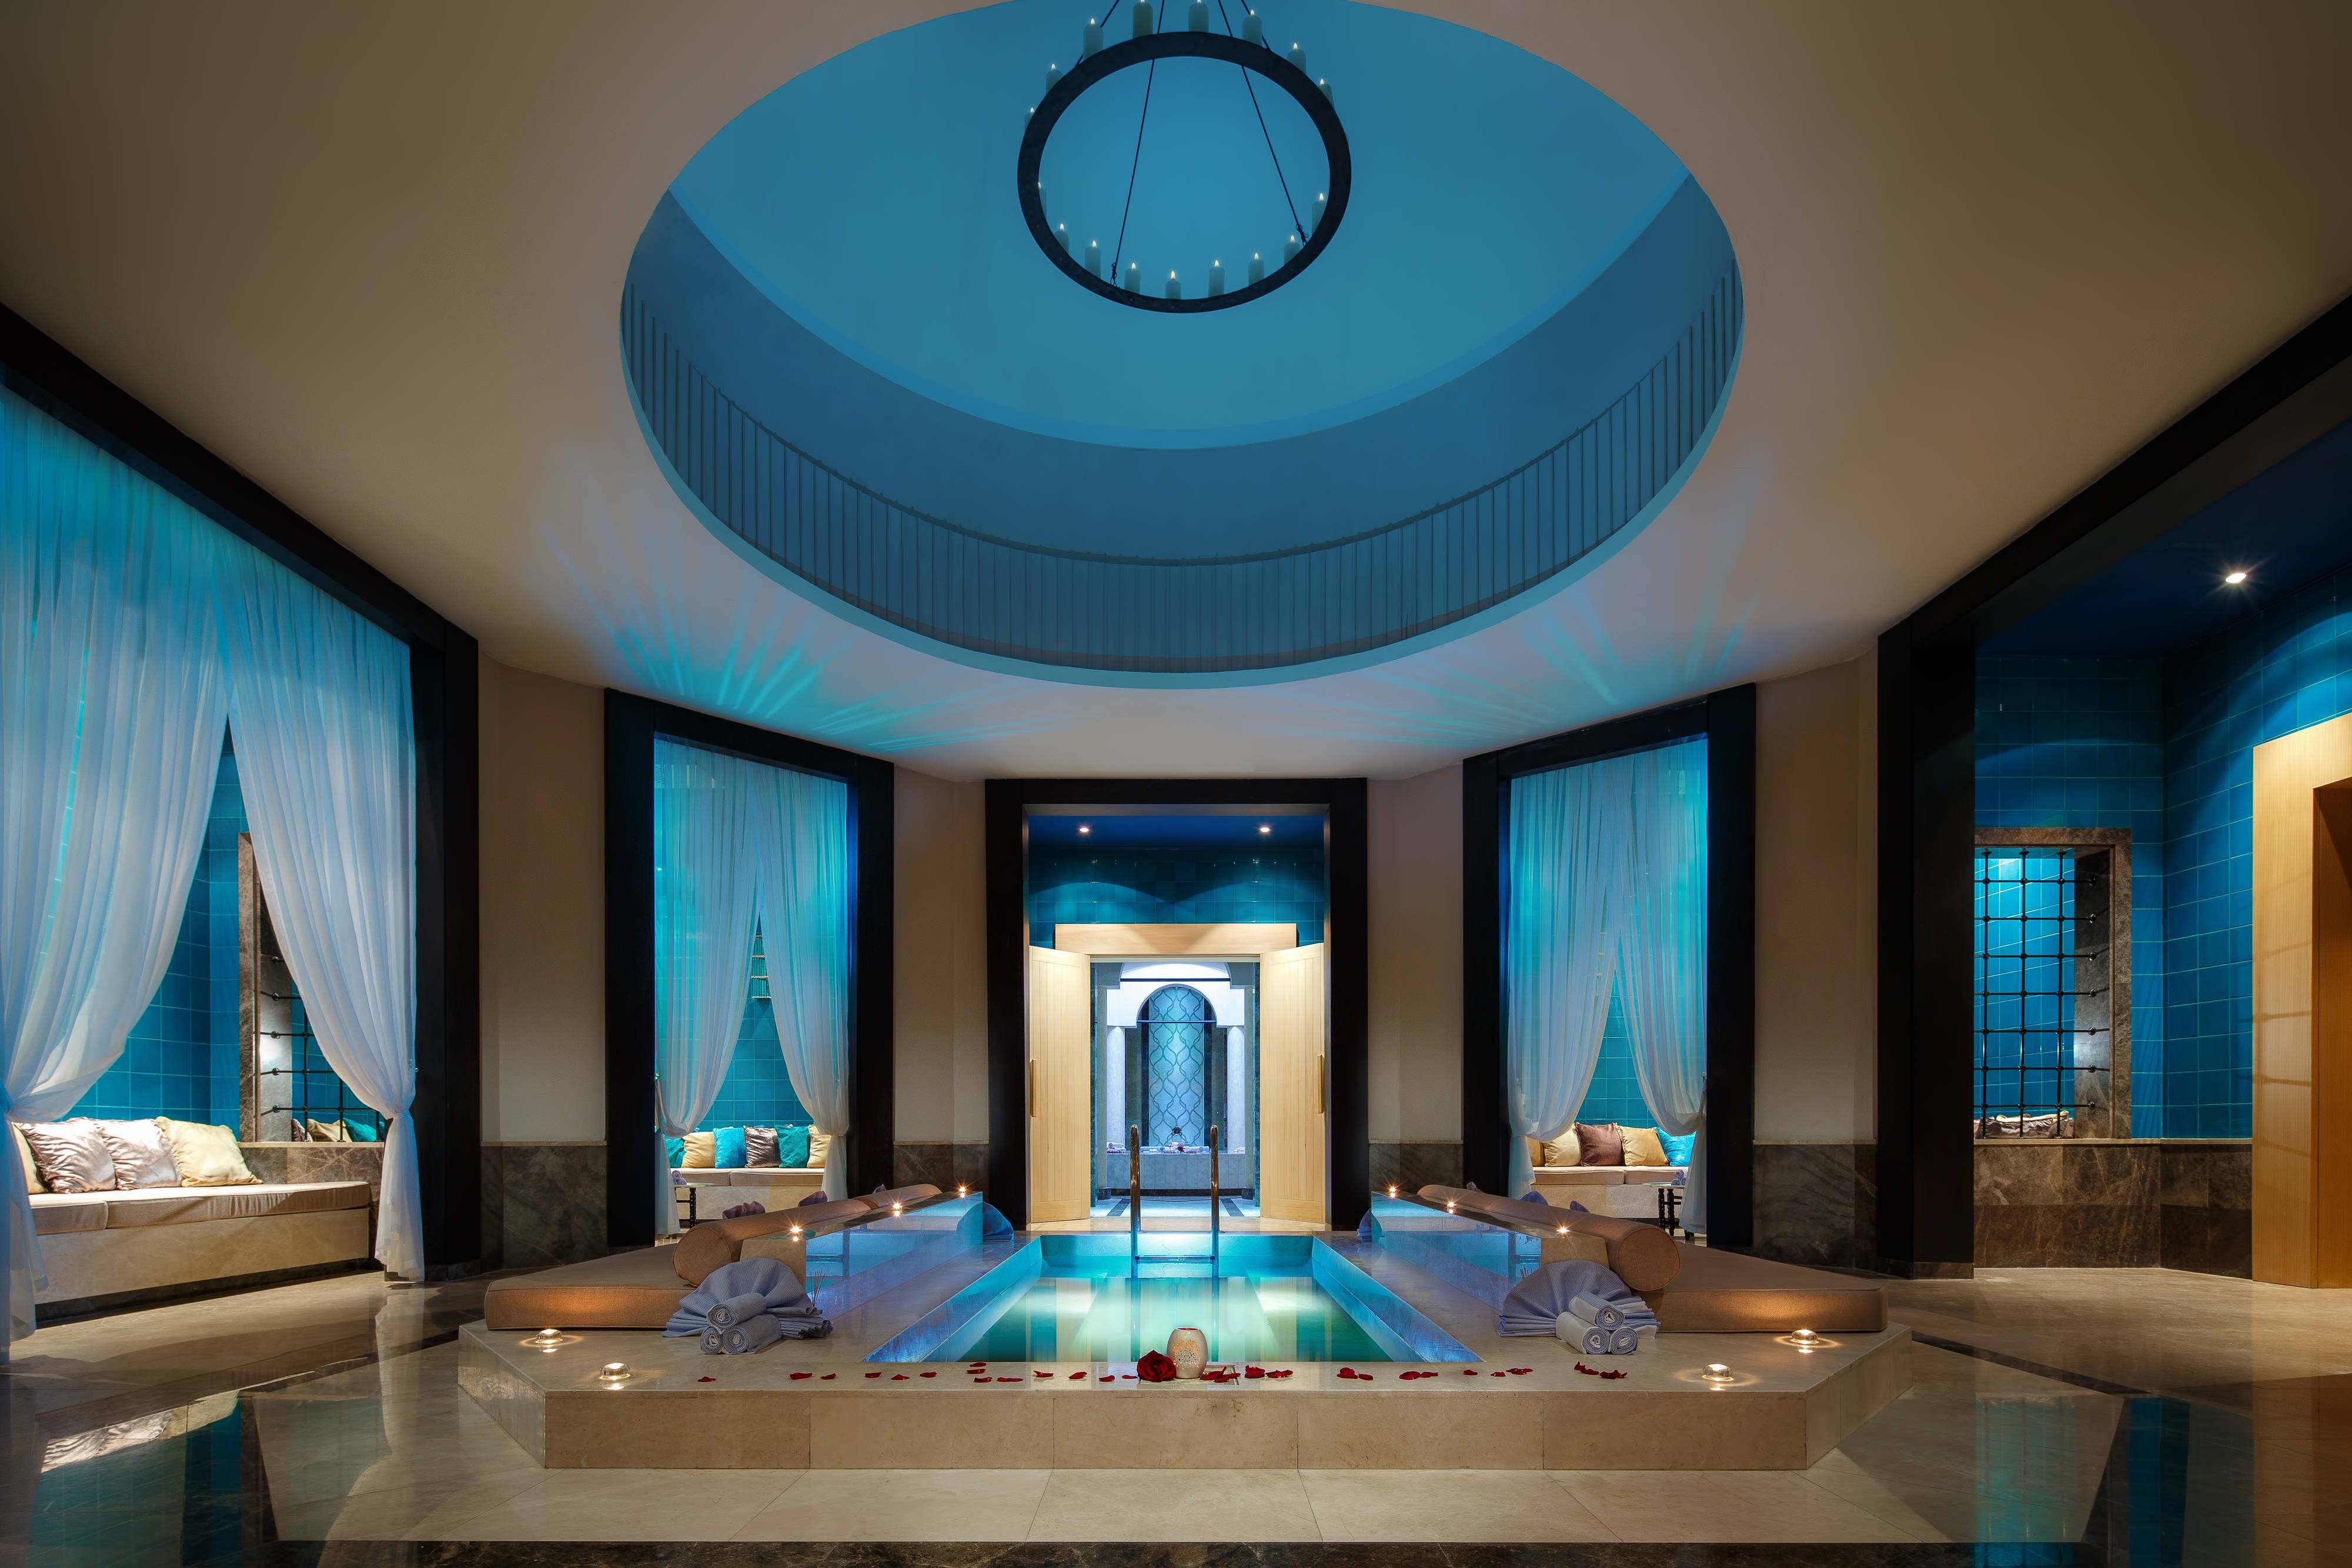 SOUL Spa - Hammam Lounge